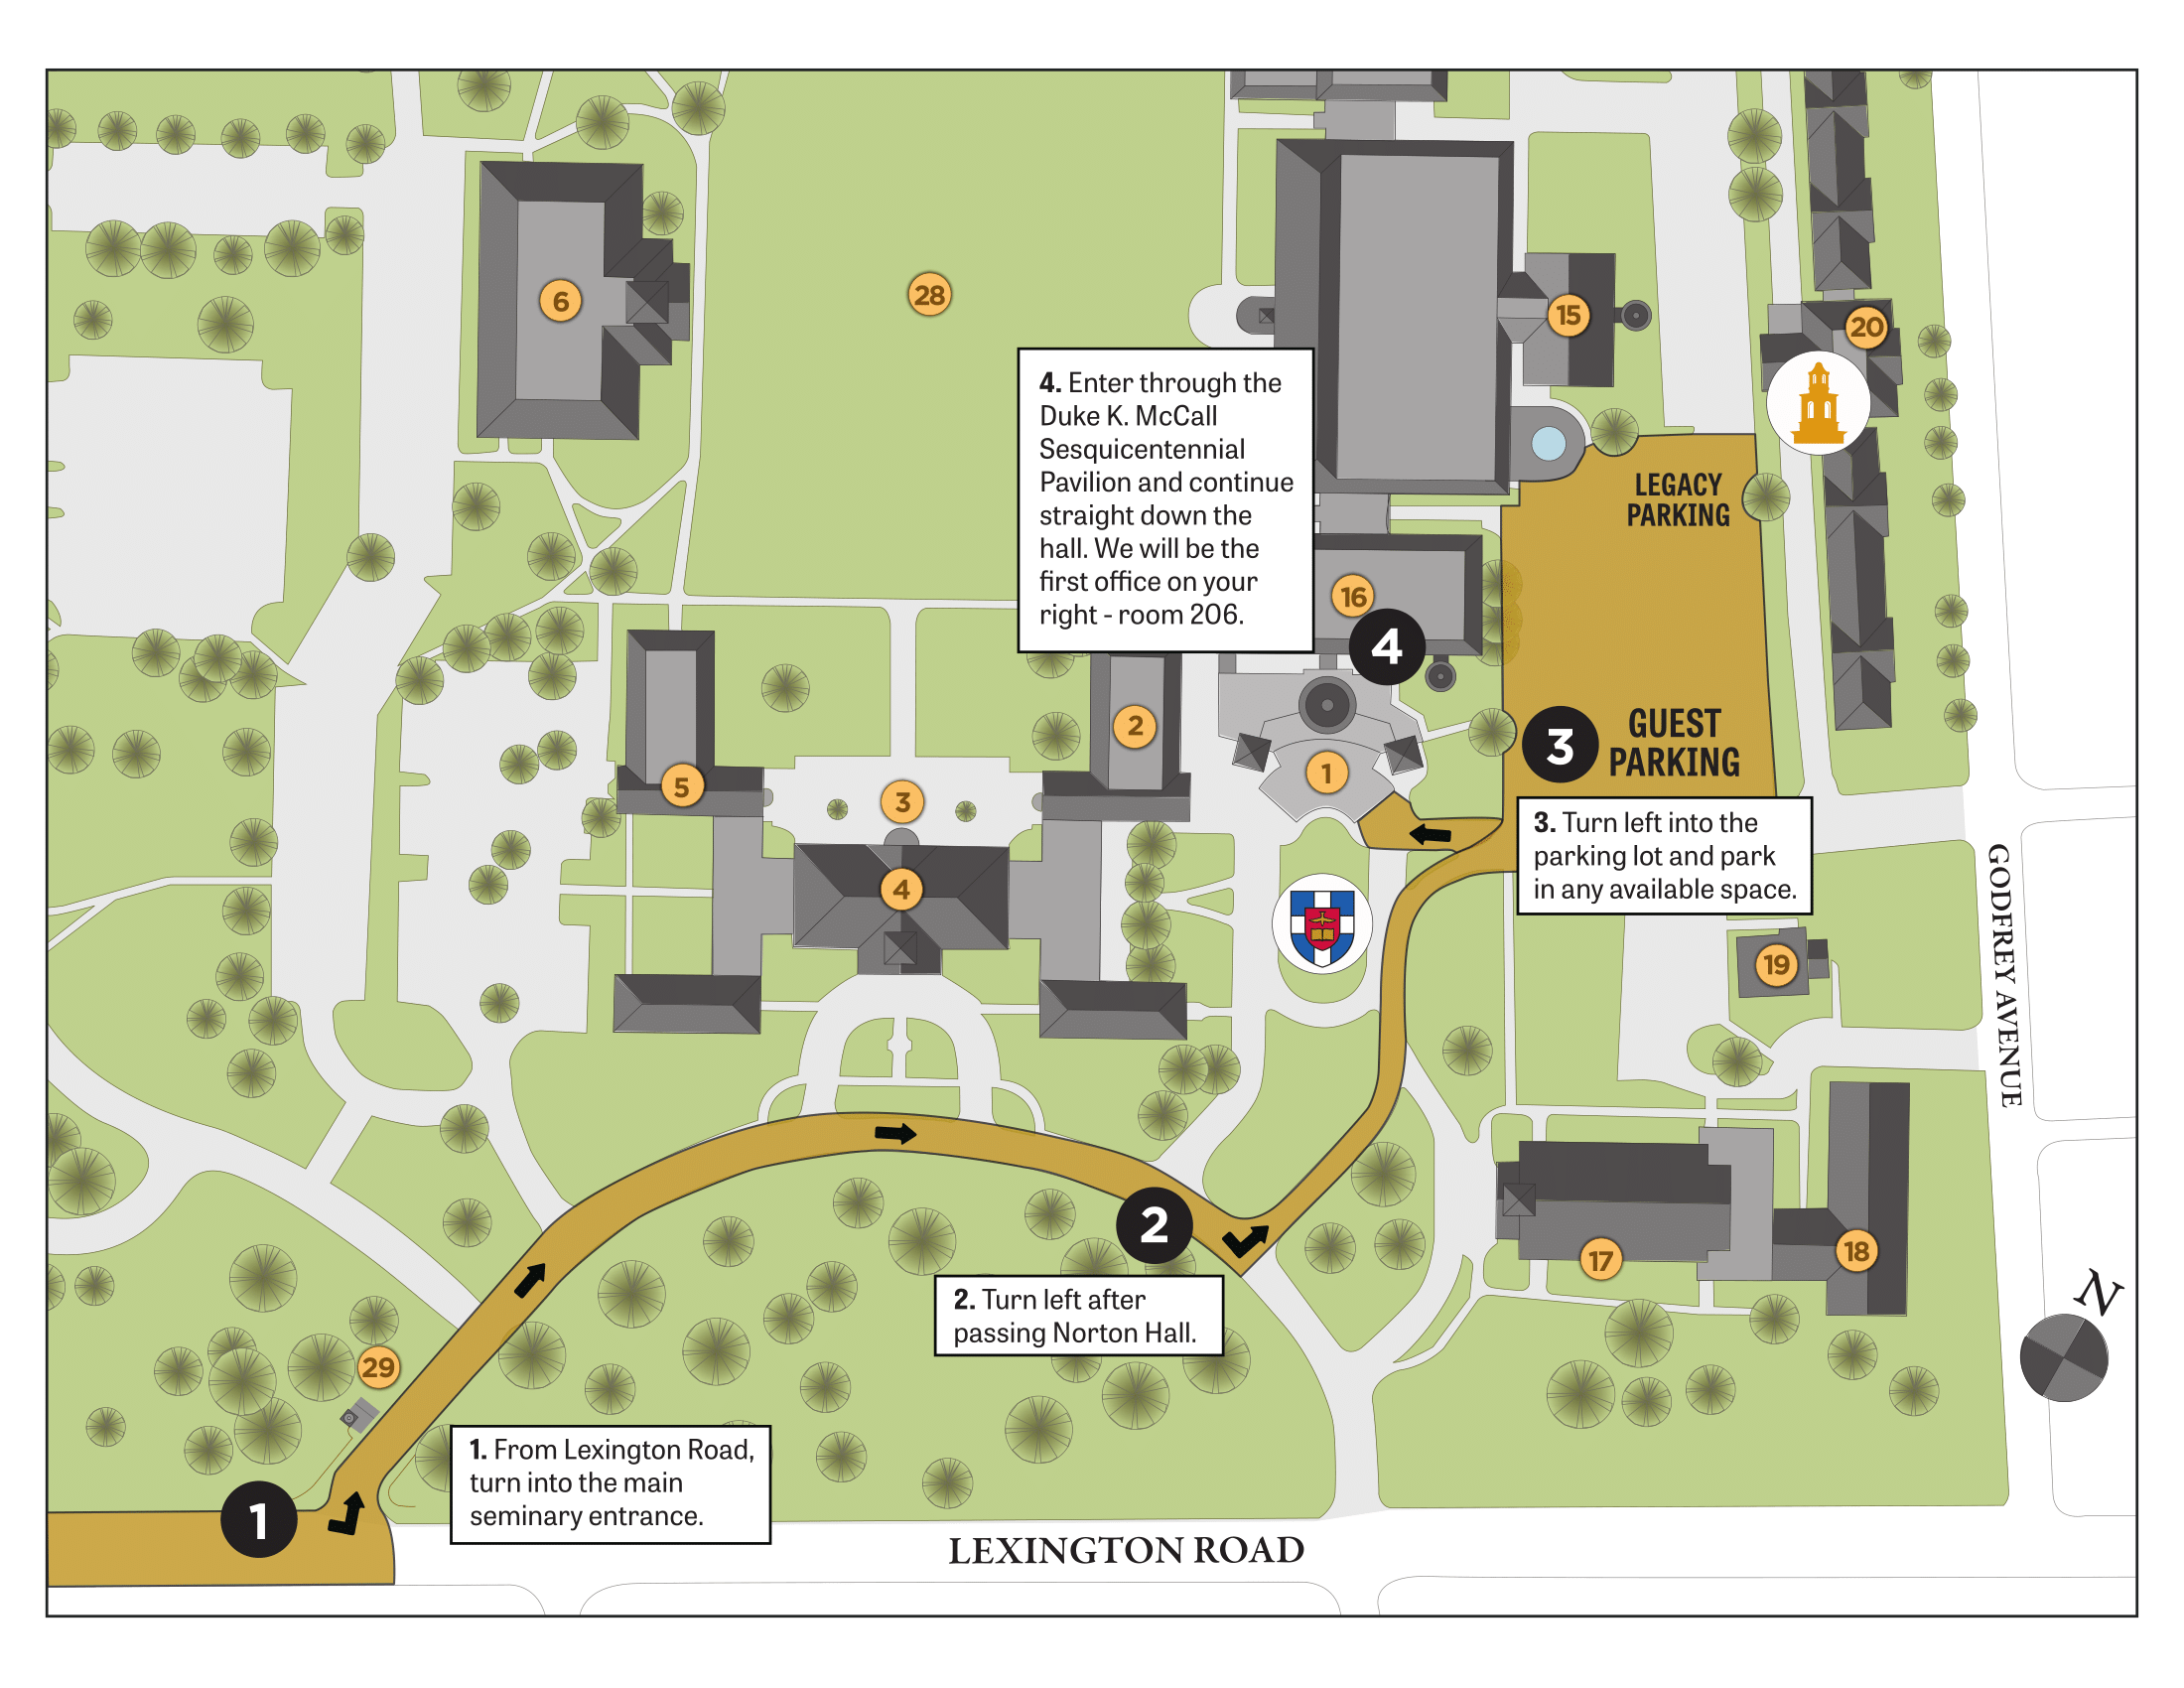 Campus Map - Boyce College on boyce college campus map, sbvc campus map, intel campus map, swbts campus map, sbcc campus map, church campus map,